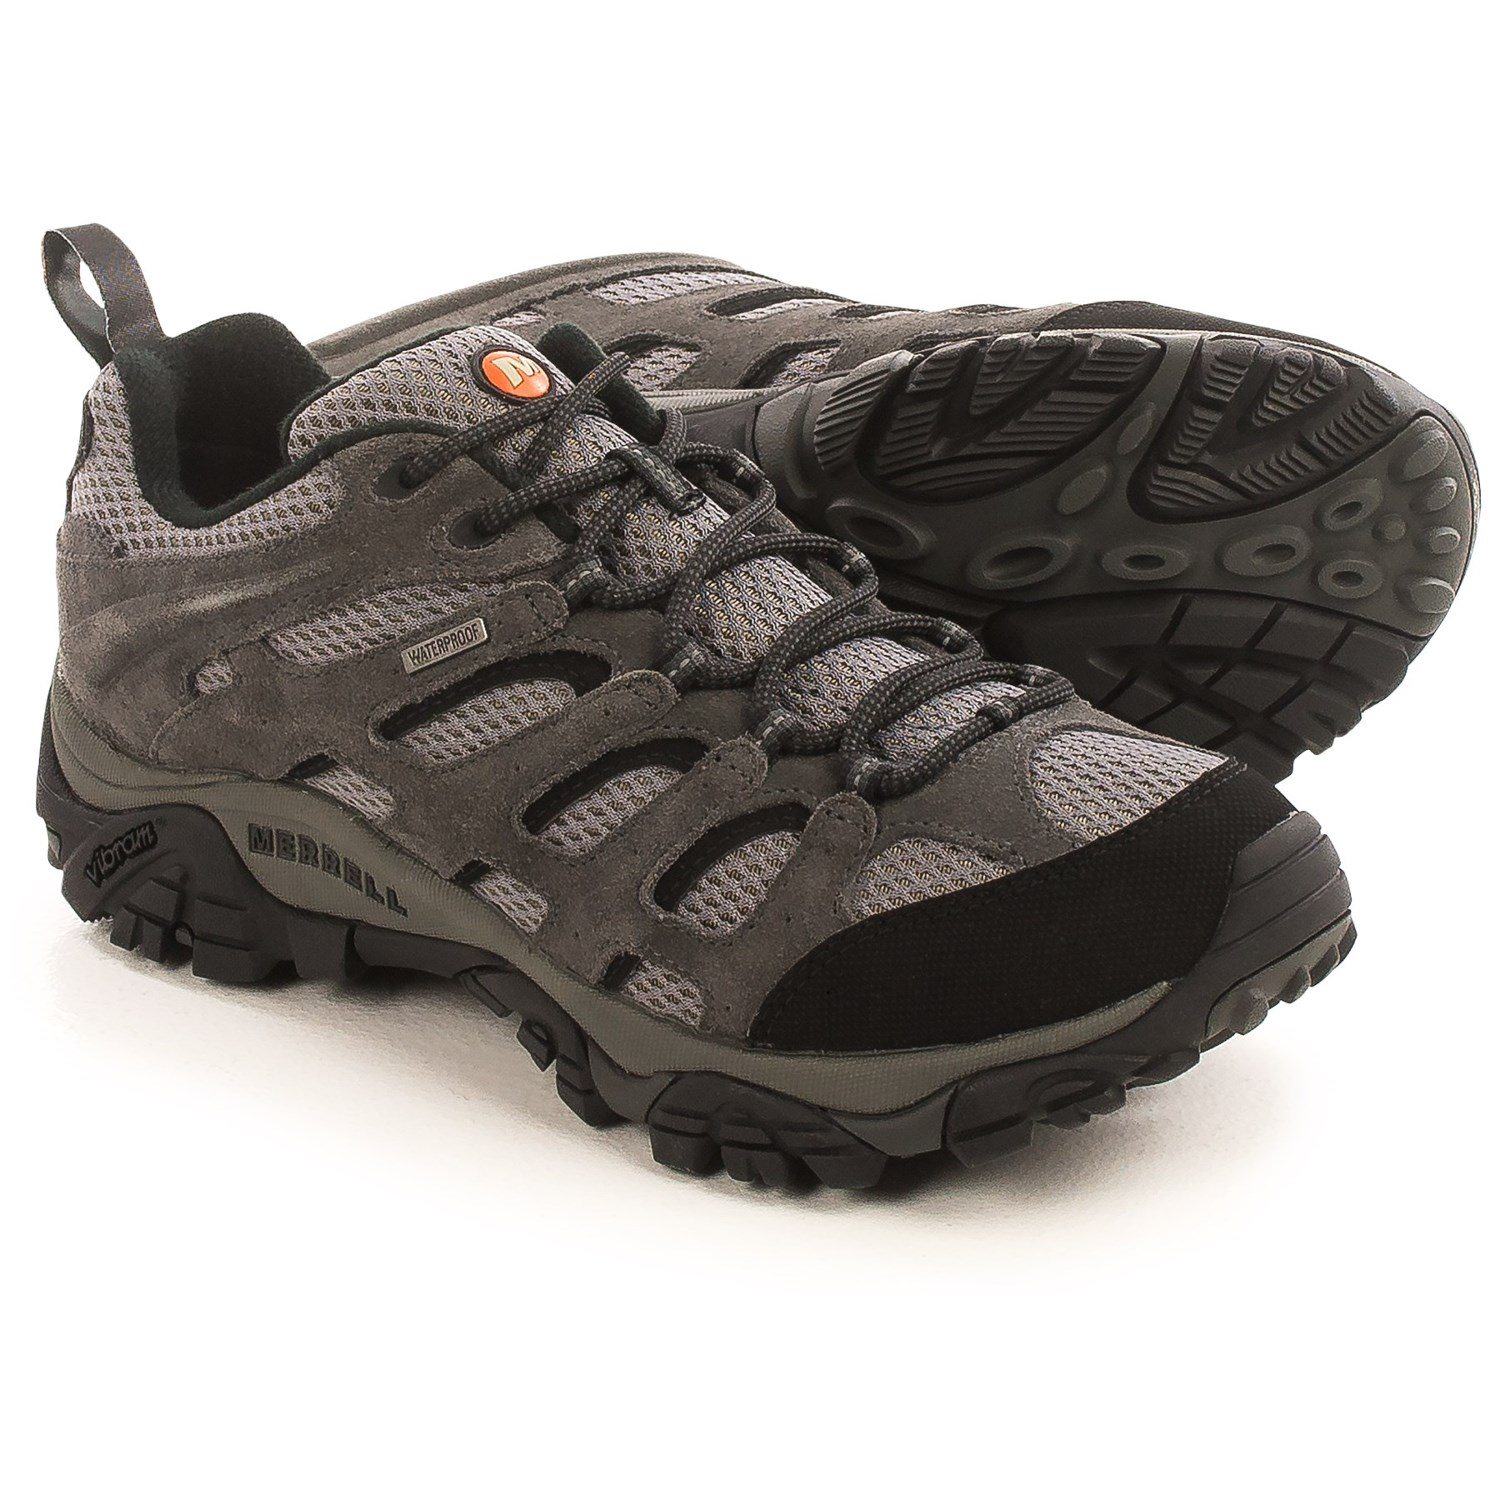 Merrell Moab Hiking Shoes For Men Save 33